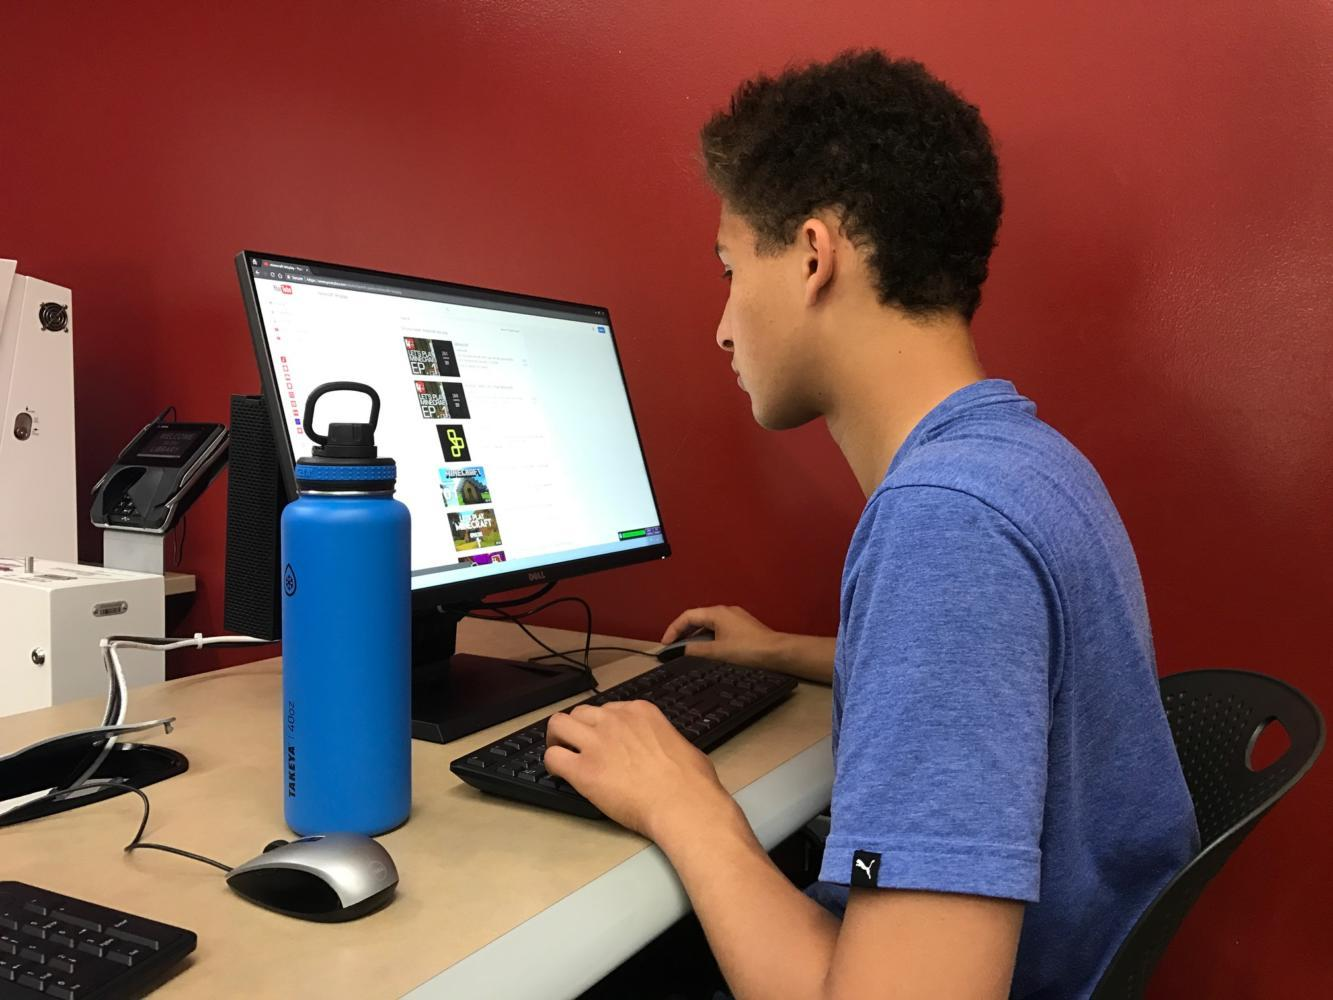 Ziad Kedkad, a sophomore, goes to the library in his free time after AP testing.